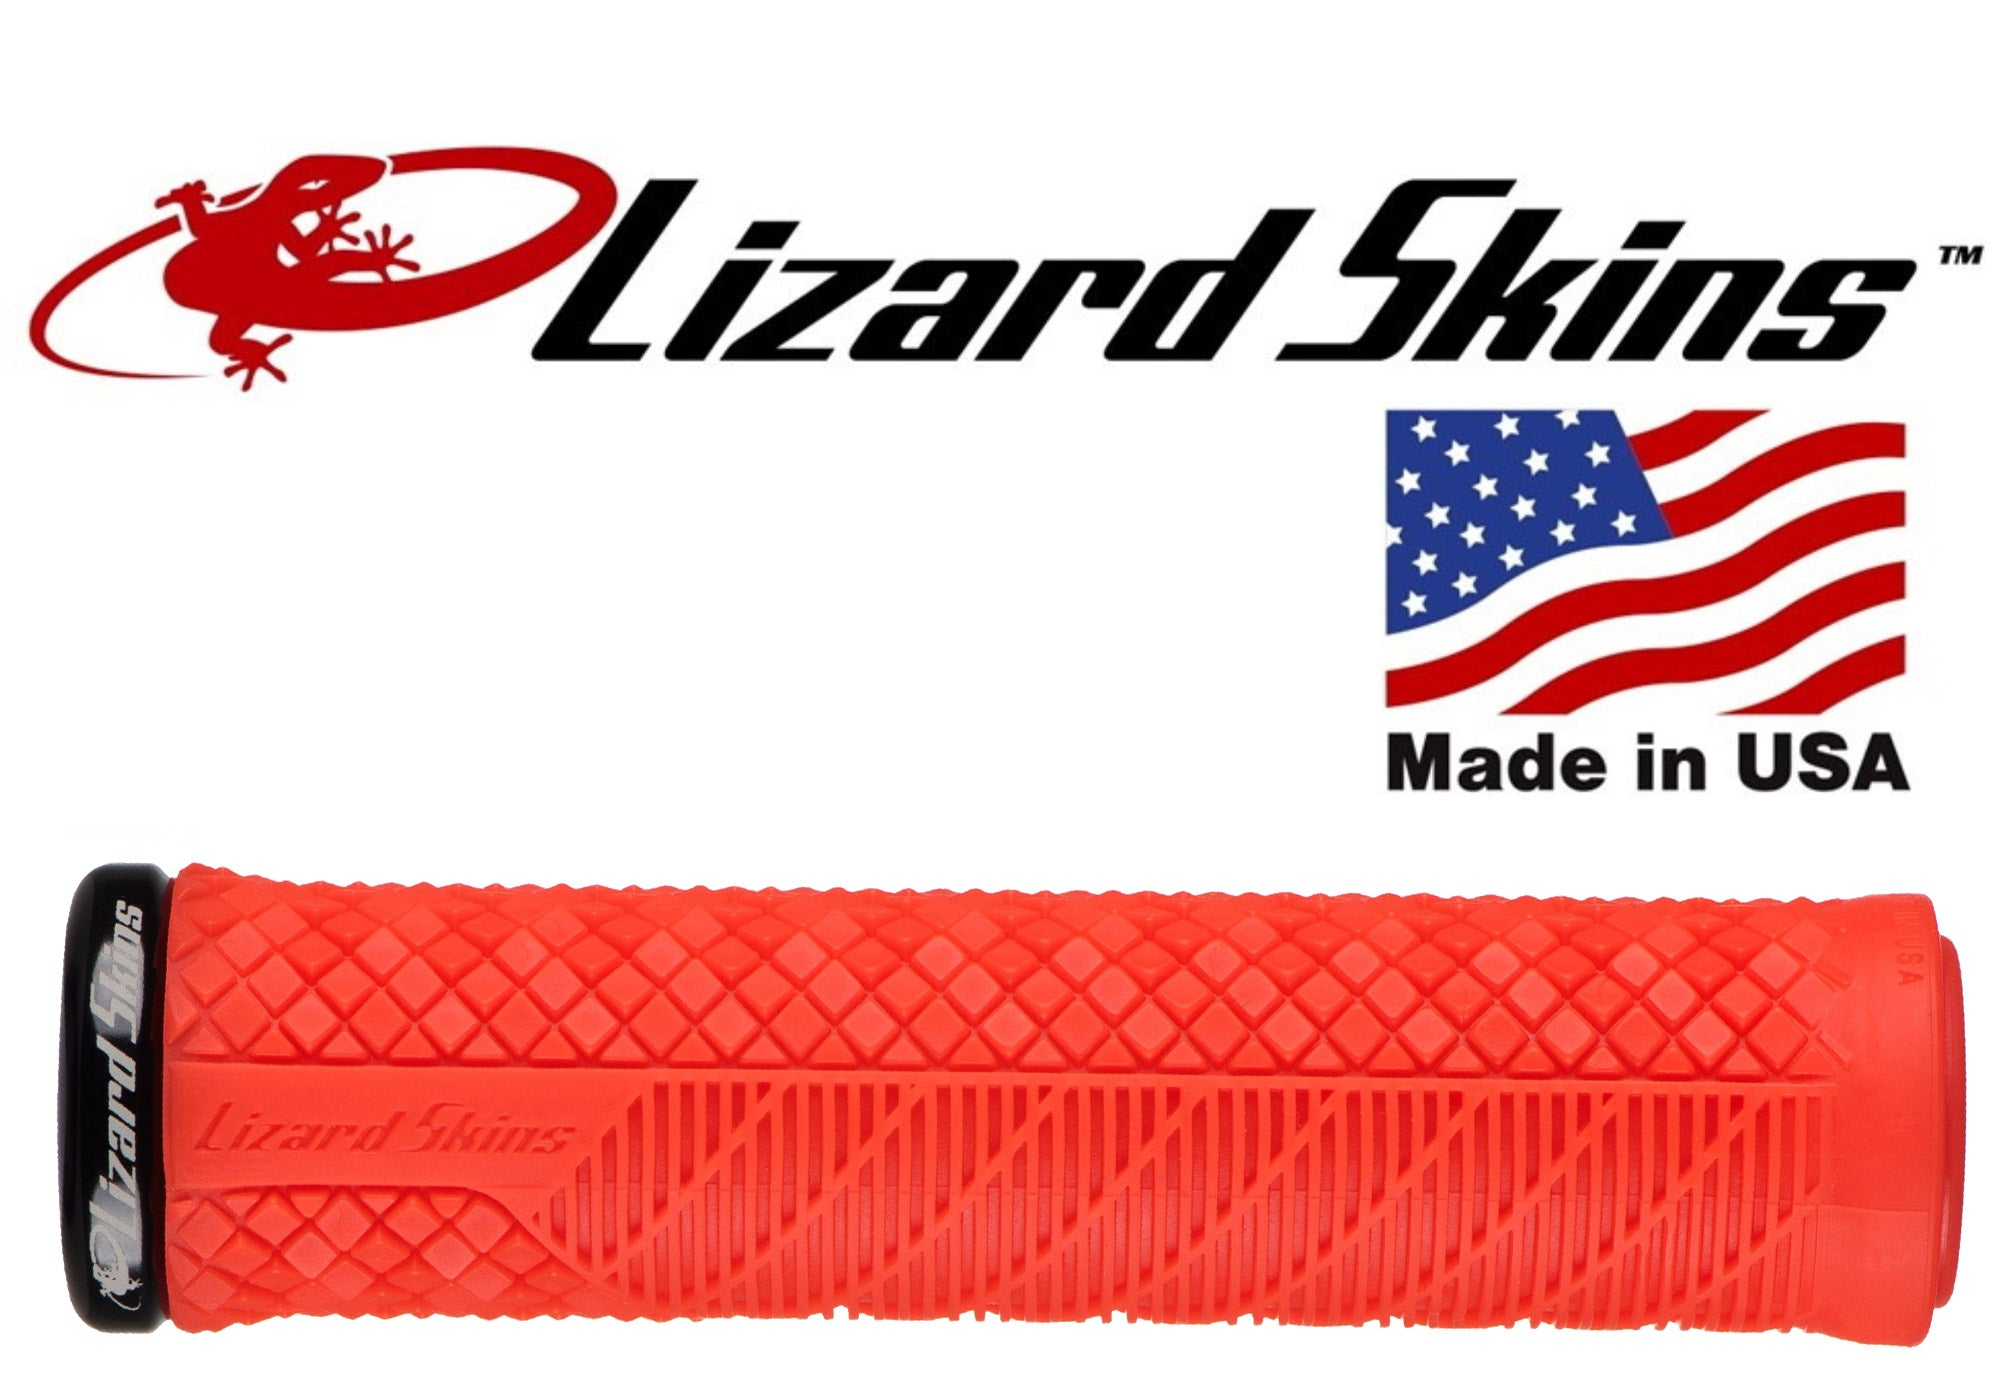 Lizard Skins Lock-On Charger Evo MTB Grips - Fire Red, buy now at Woolys Wheels Sydney